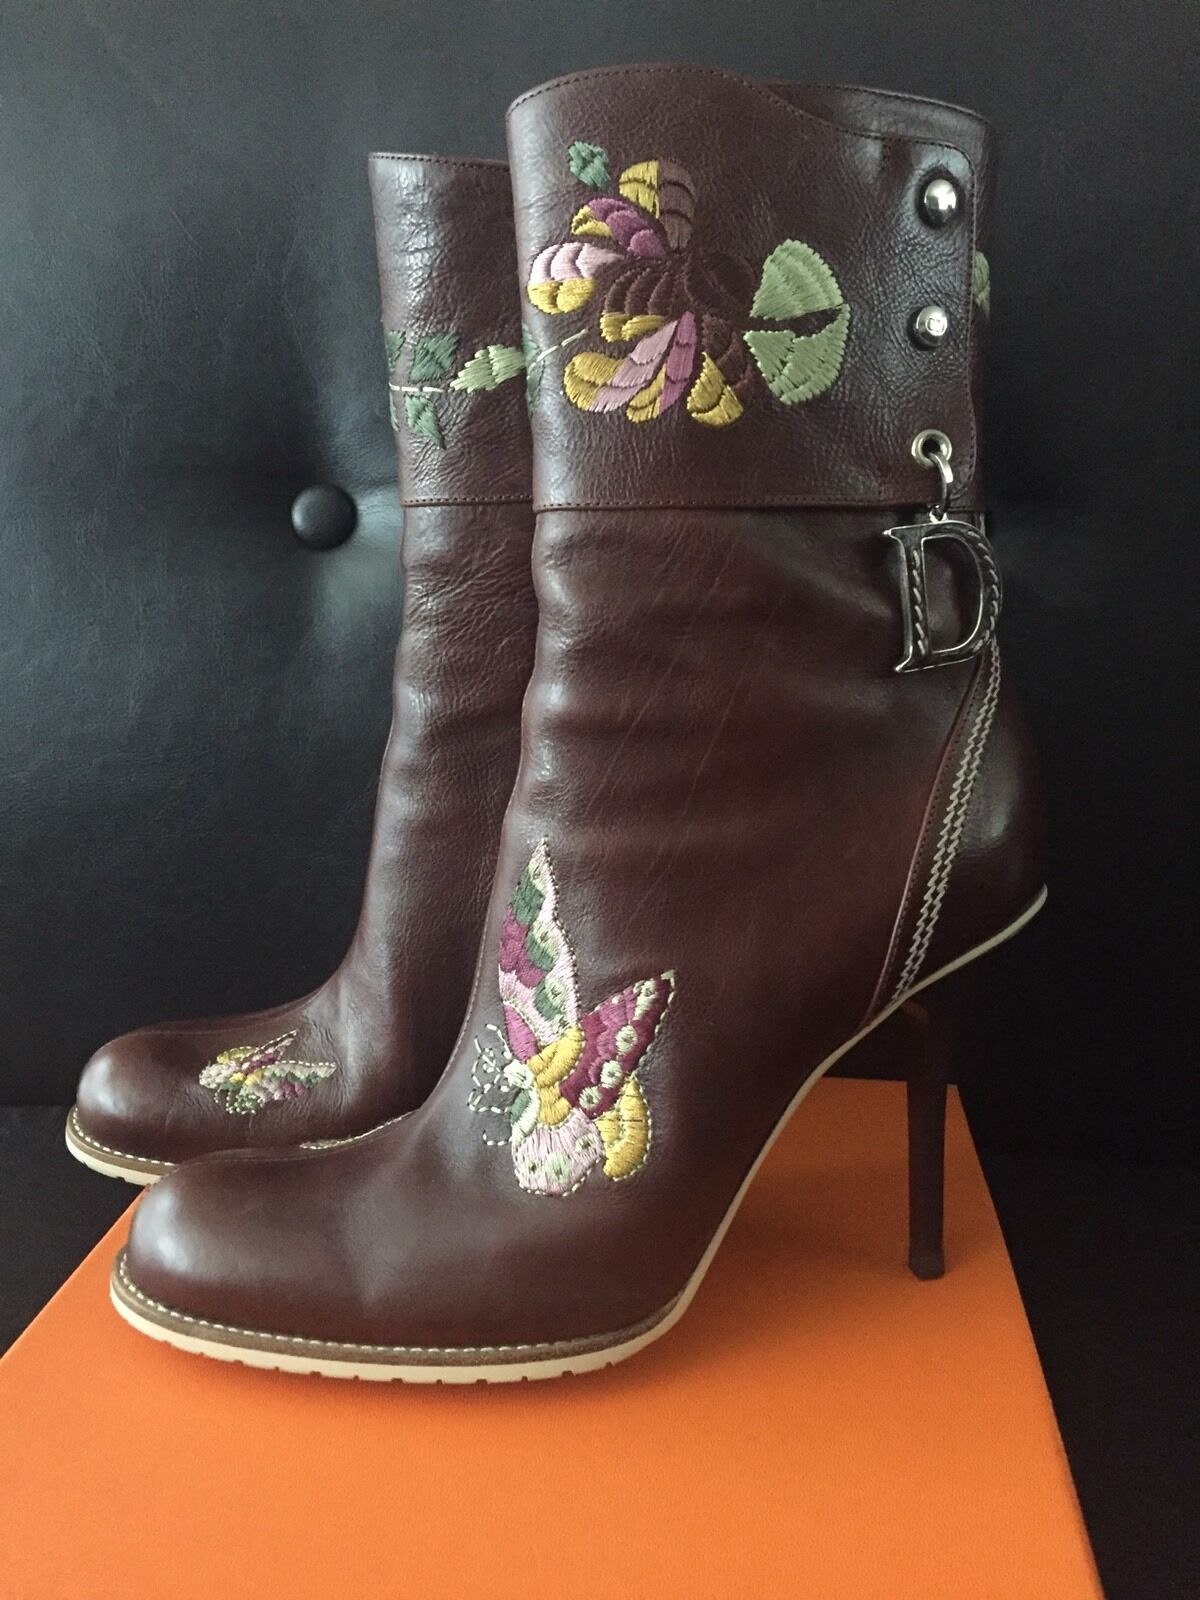 Christian Dior by John Galliano Embroidered Boots NIB (Size 37)